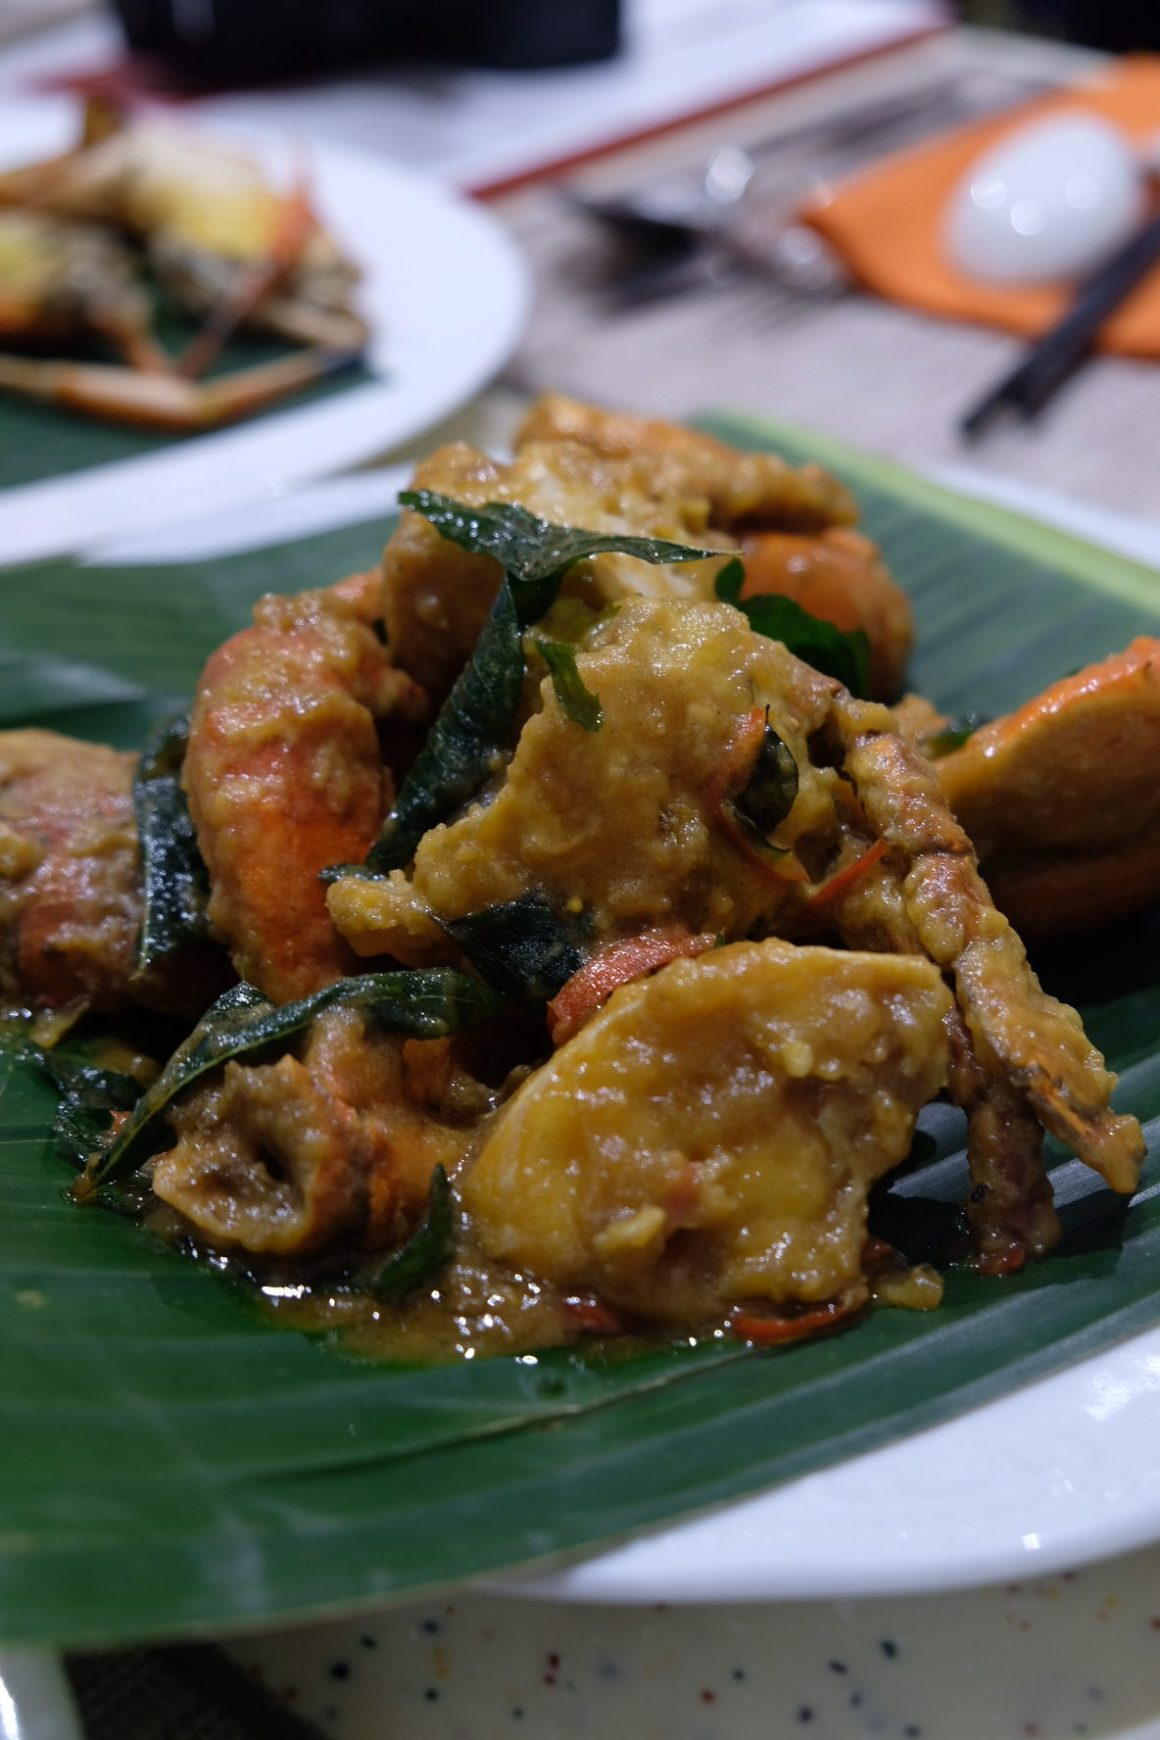 Heritage Flavours and Premium Madness Buffet At Ginger, PARKROYAL On Beach Road - Salted Egg Crab